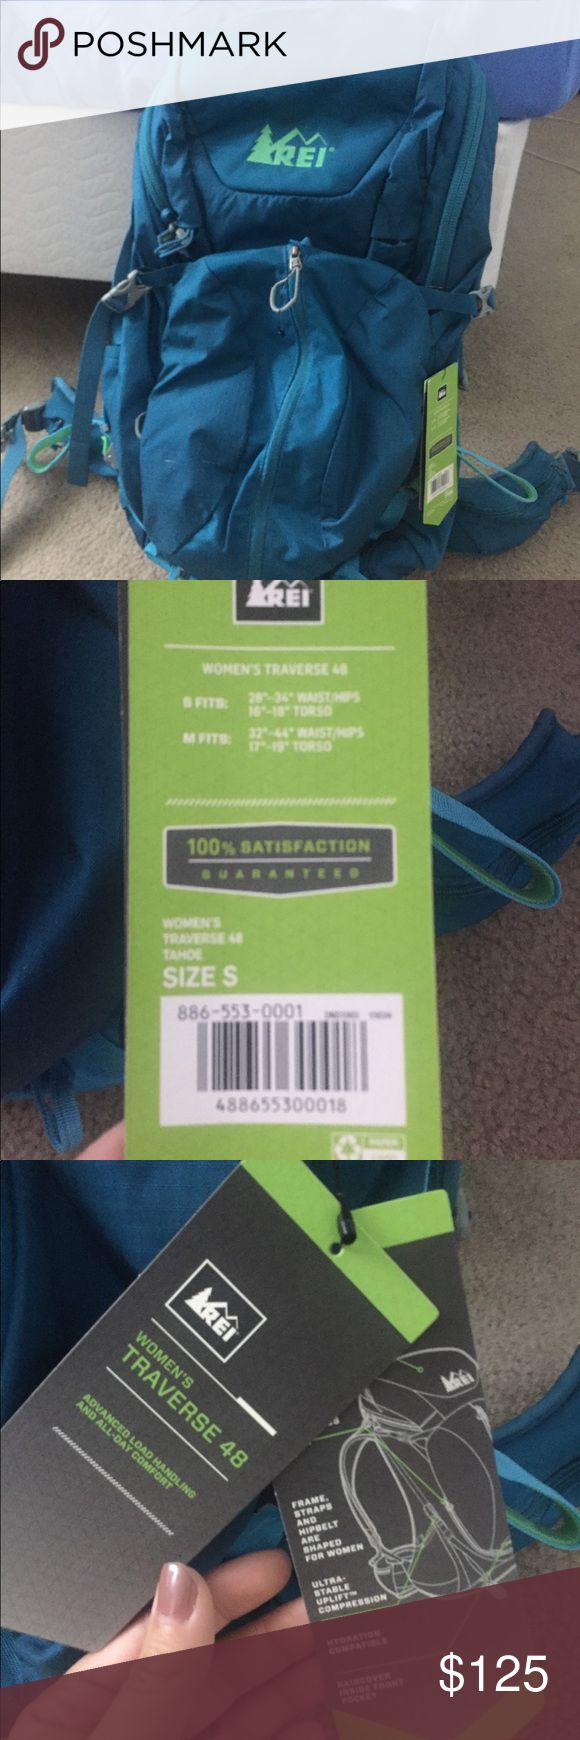 REI women's traverse 46 liters size small Size small women's traverse 48 Tahoe ... size small is 46 liters and includes a rain cover inside. Never used before but bought it last season. Realized I'm better fit for a suitcase. 🤷🏼♀️ 125 obo brand new it was about 150 since I've never warm it before I'm asking 125 but willing to negotiate. Let me know if there are any questions! :) REI Bags Travel Bags